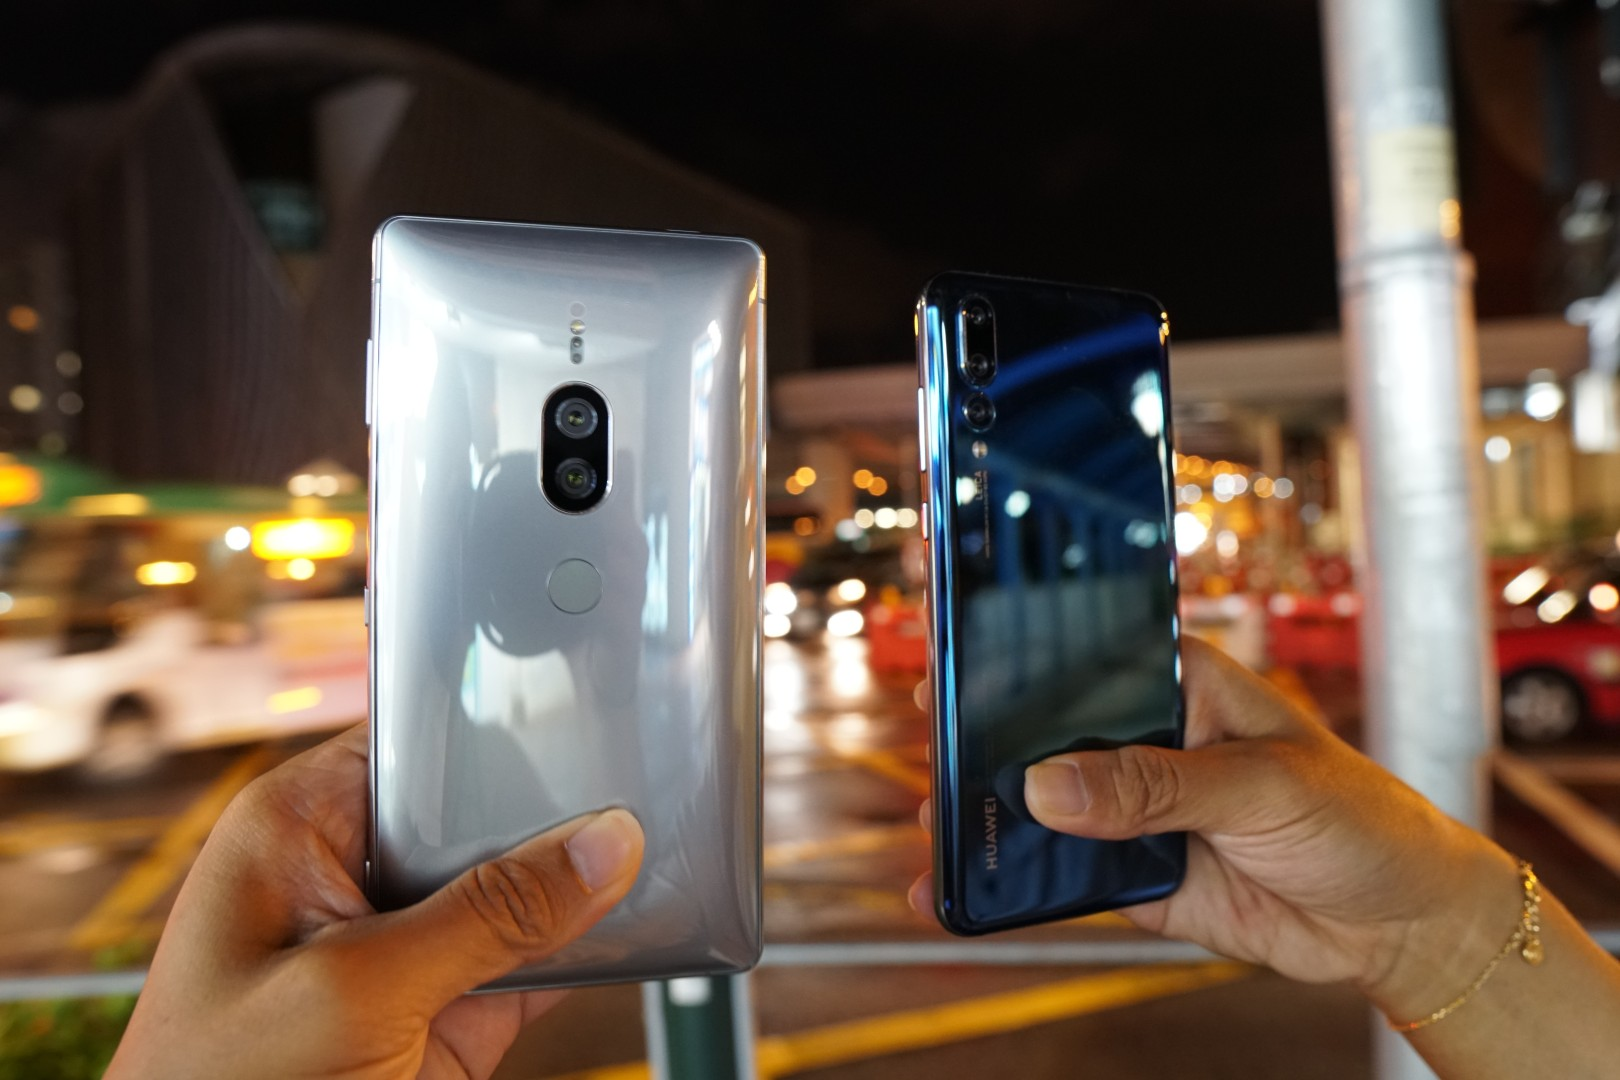 Phone camera face-off: Sony XZ2 Premium vs Huawei P20 Pro